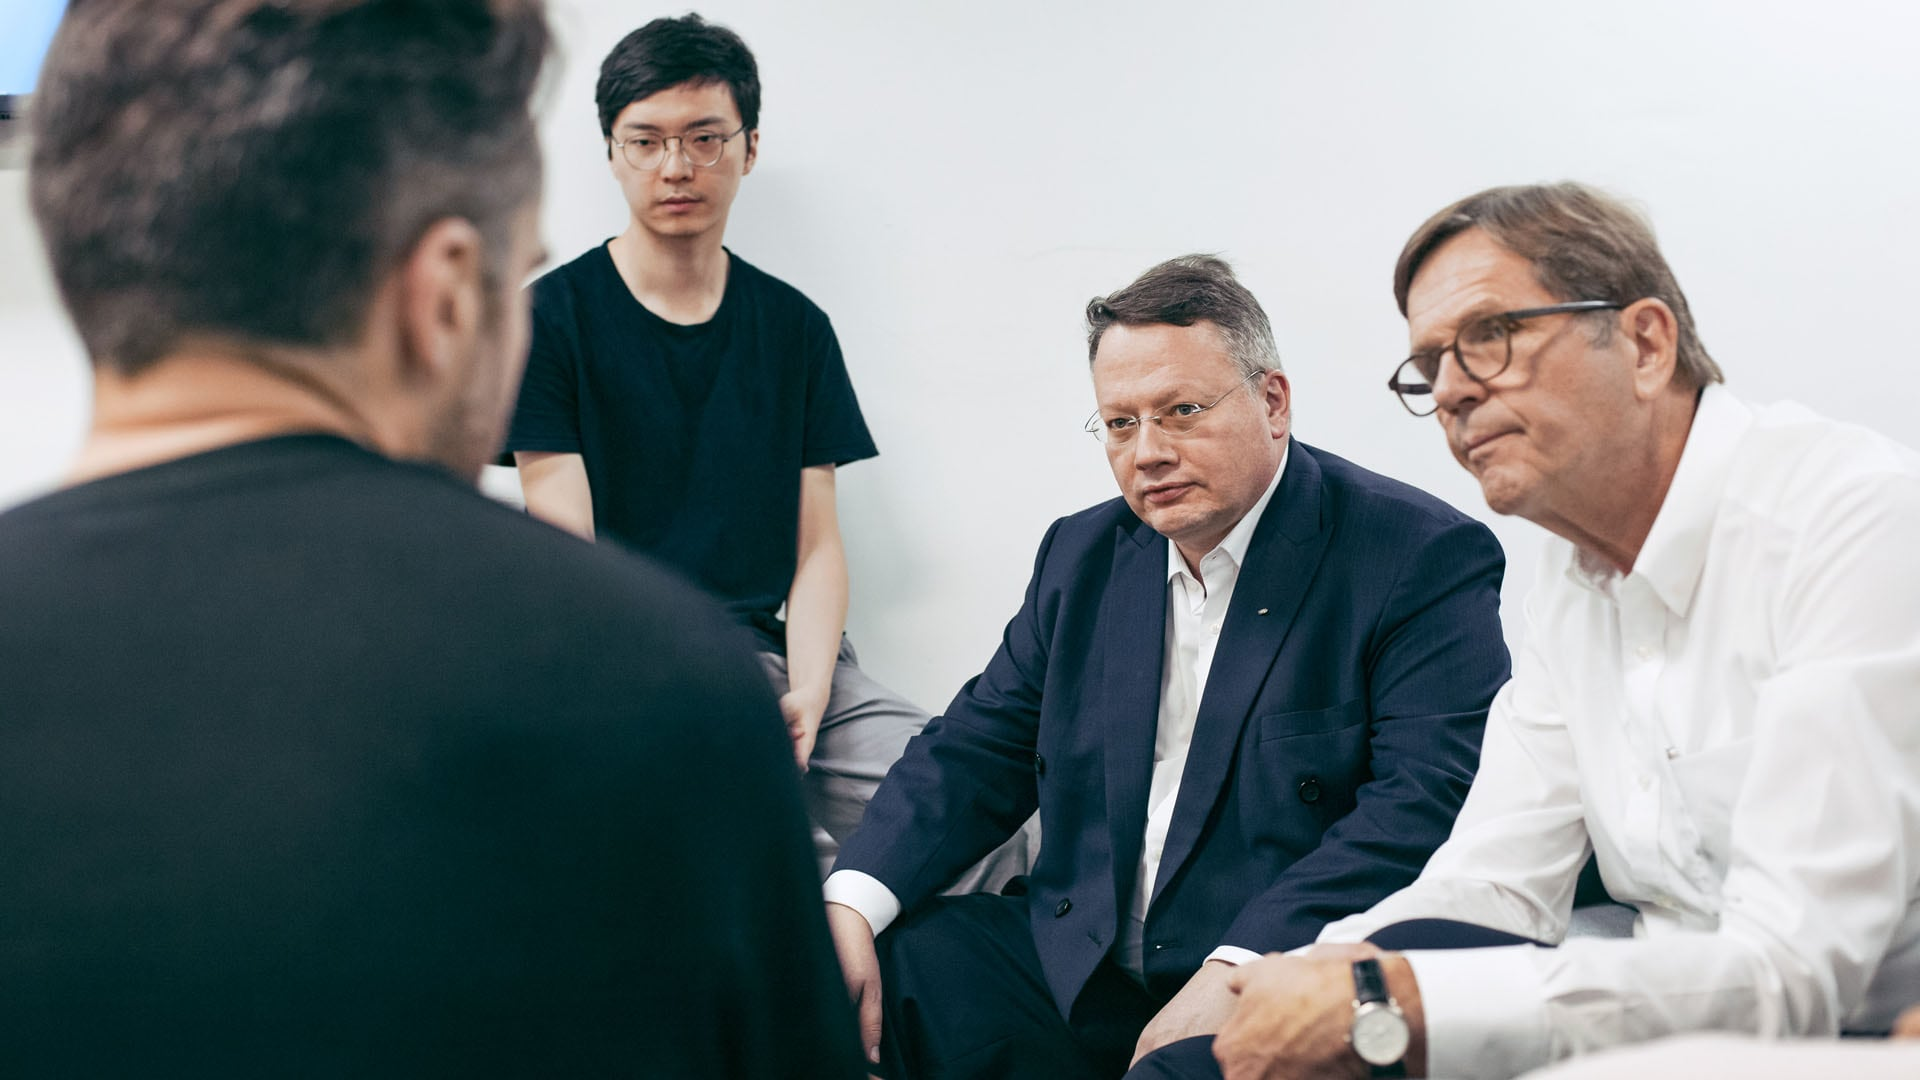 VW and Audi pay a visit to Makerspace HAX: Heizmann and Seitz talk with Chinese inventors.